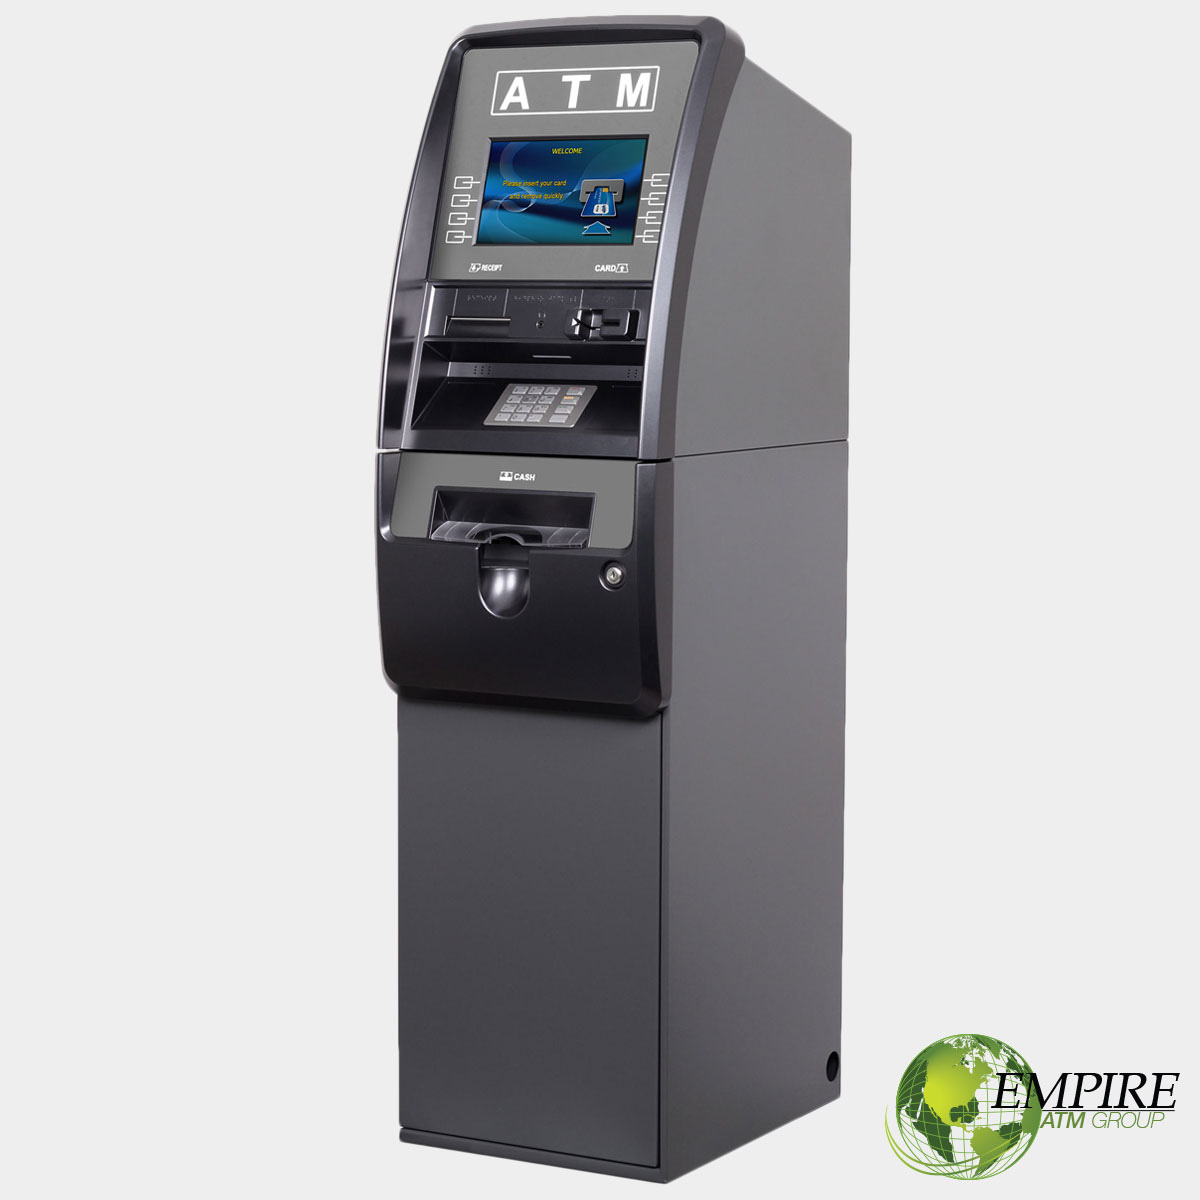 atm machine We offer free atm placement, atm machines for sale, atm processing, and  atm's for business visit today for the best deal on atm machines.